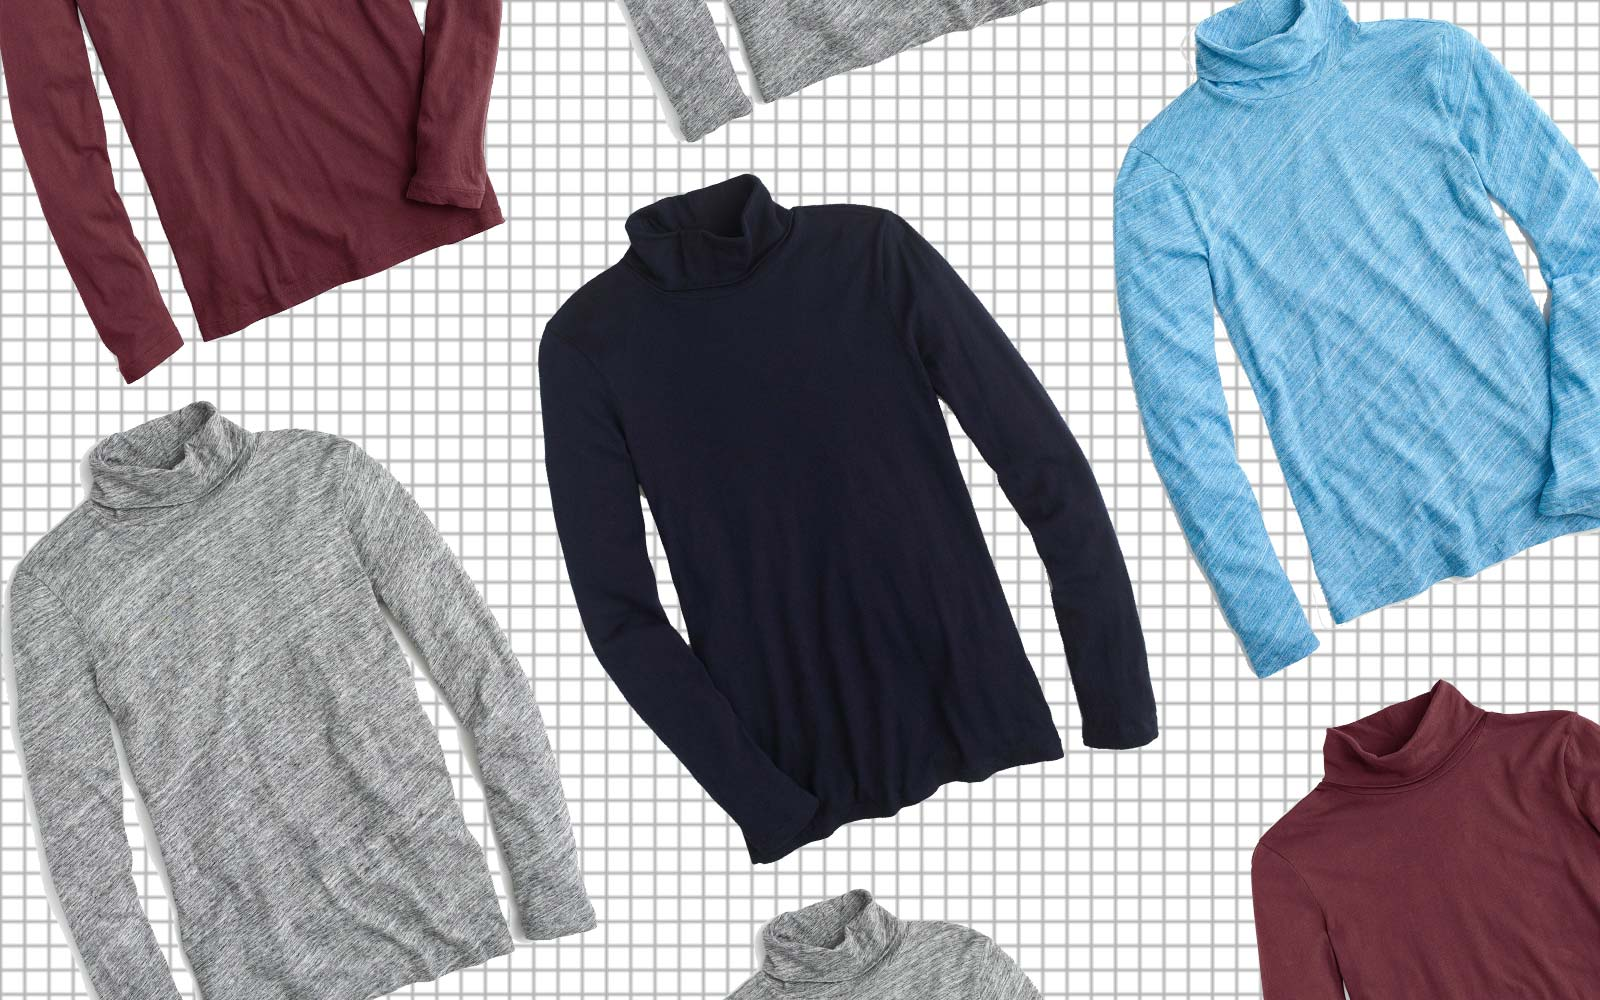 This $30 Shirt Will Fix All Your Winter Packing Problems